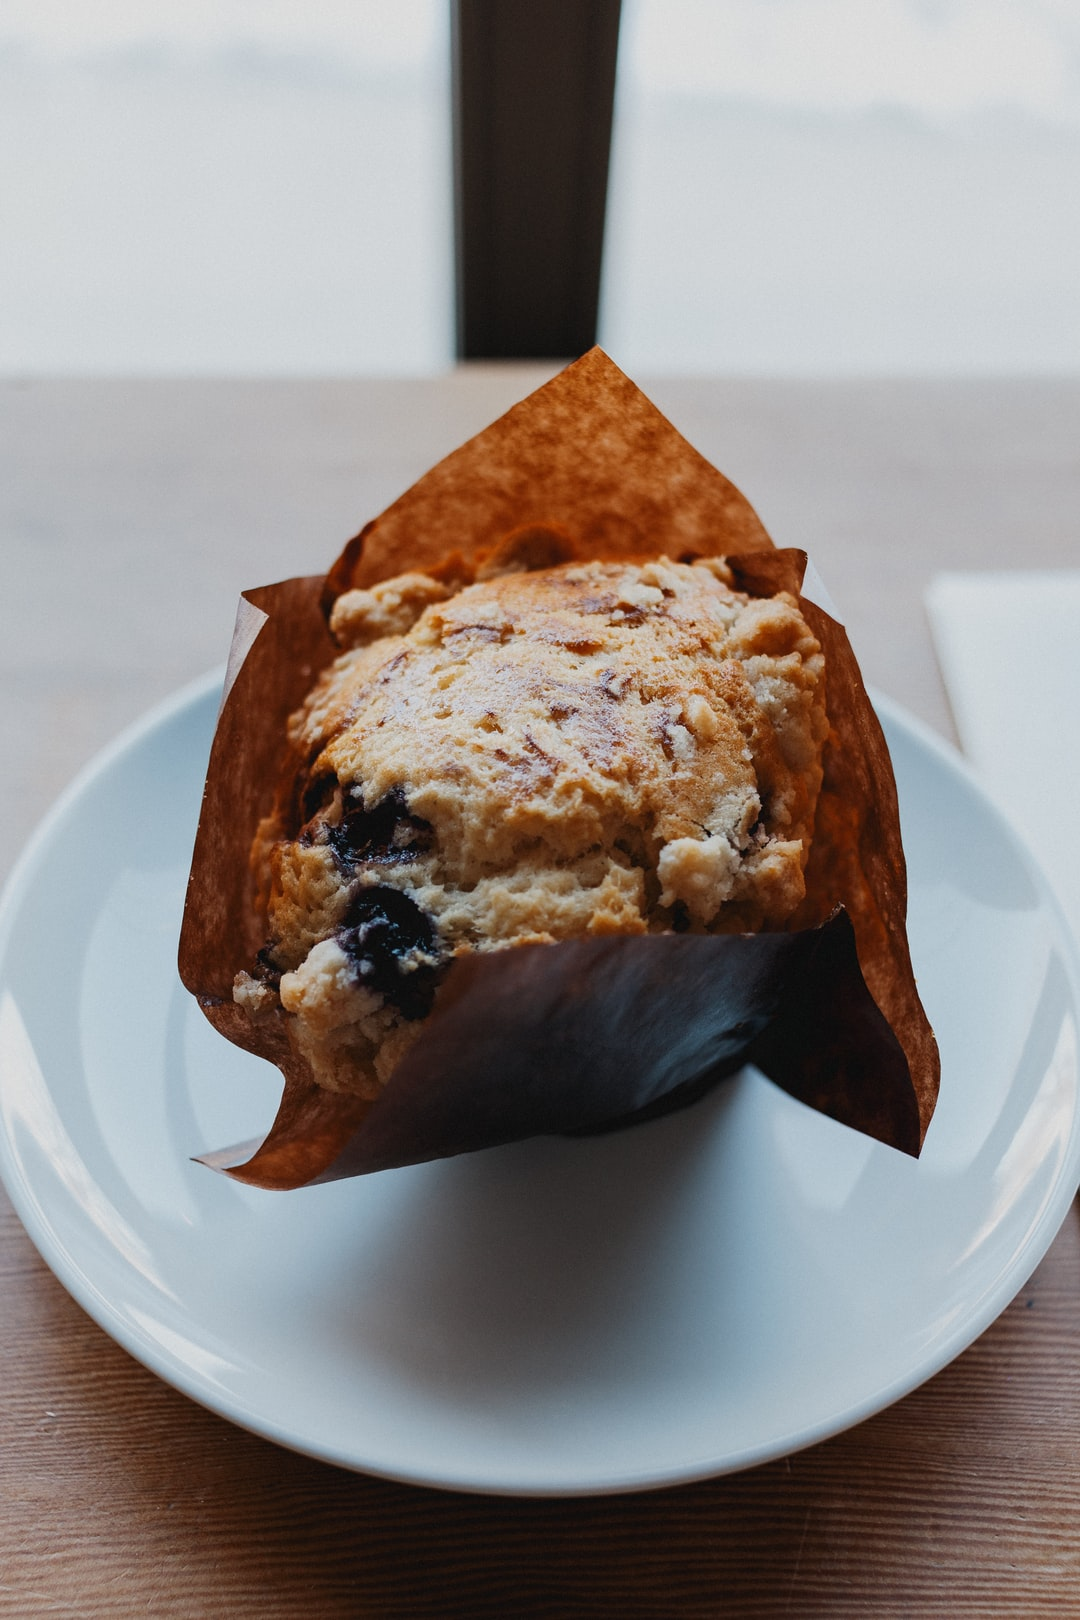 #muffin #pastry #blueberry #baking